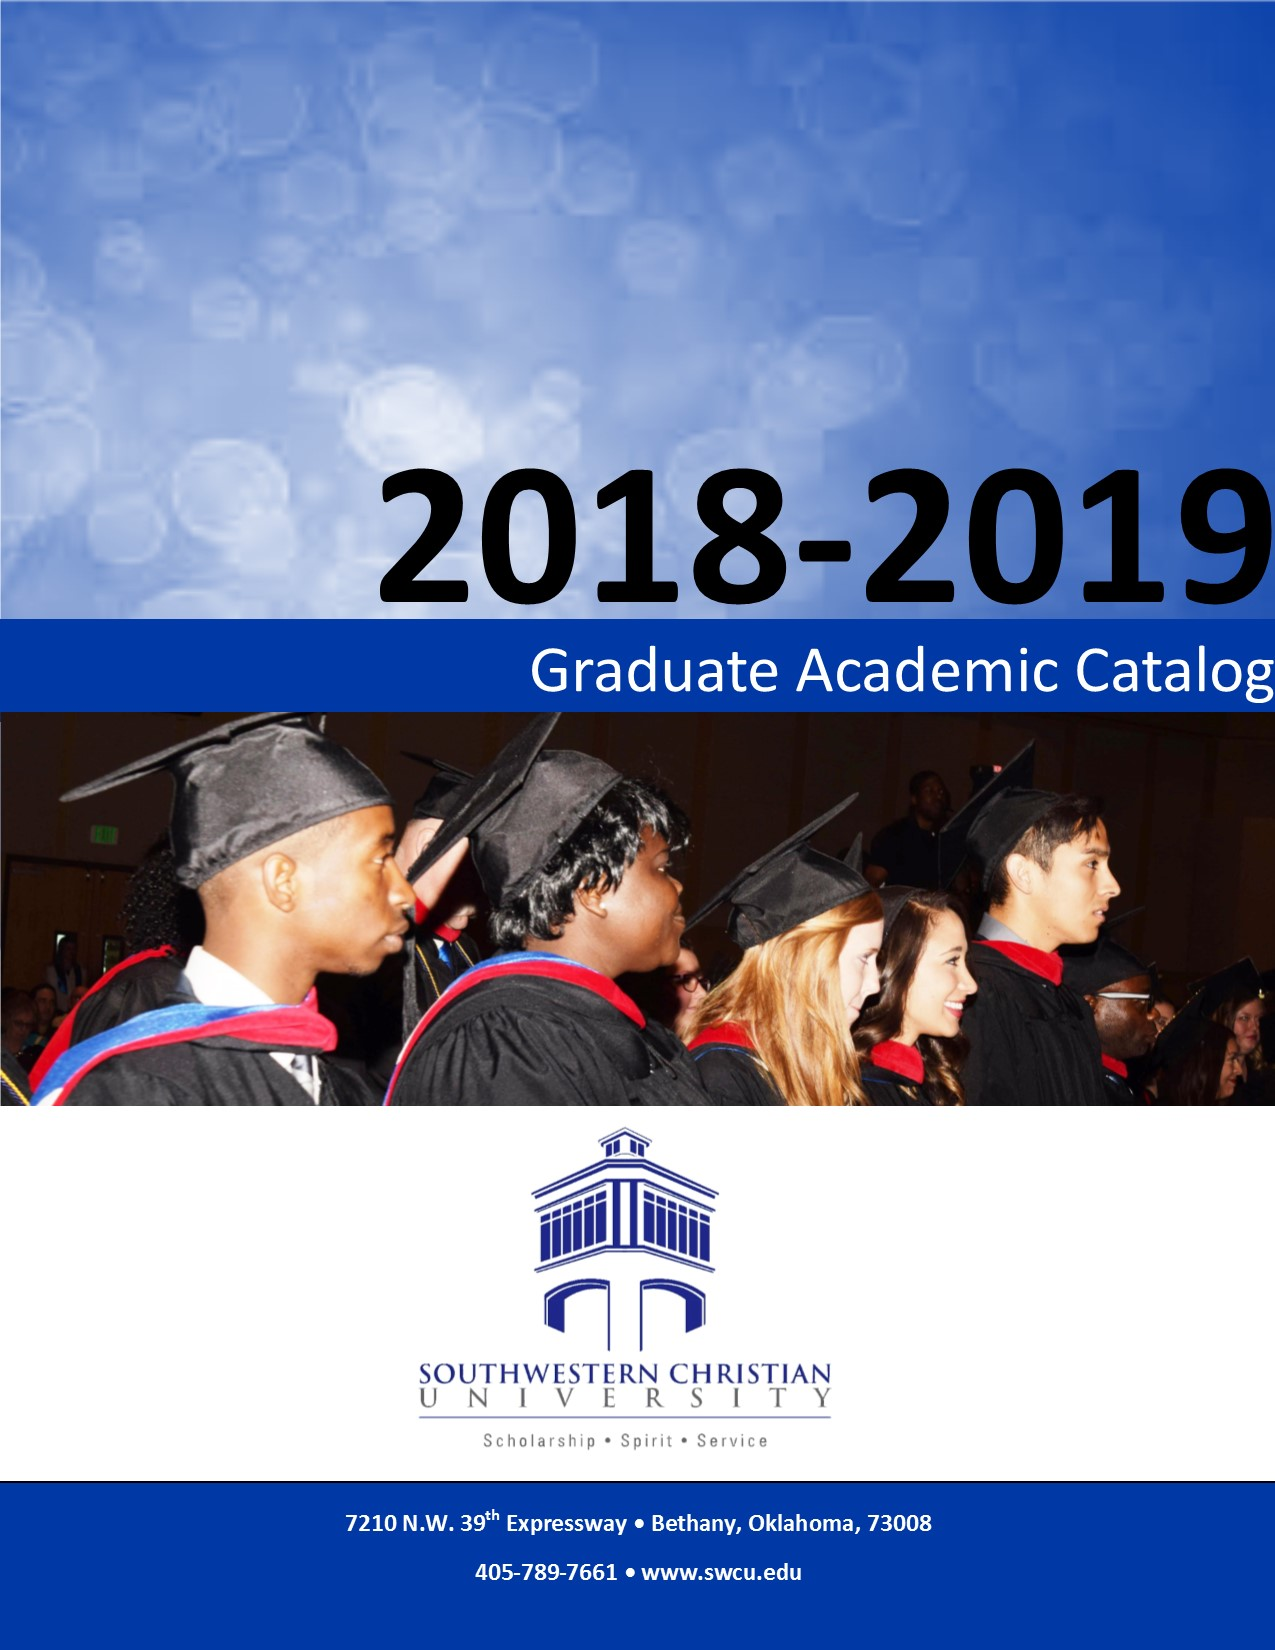 Download the 2017-2018 Graduate Academic Catalog